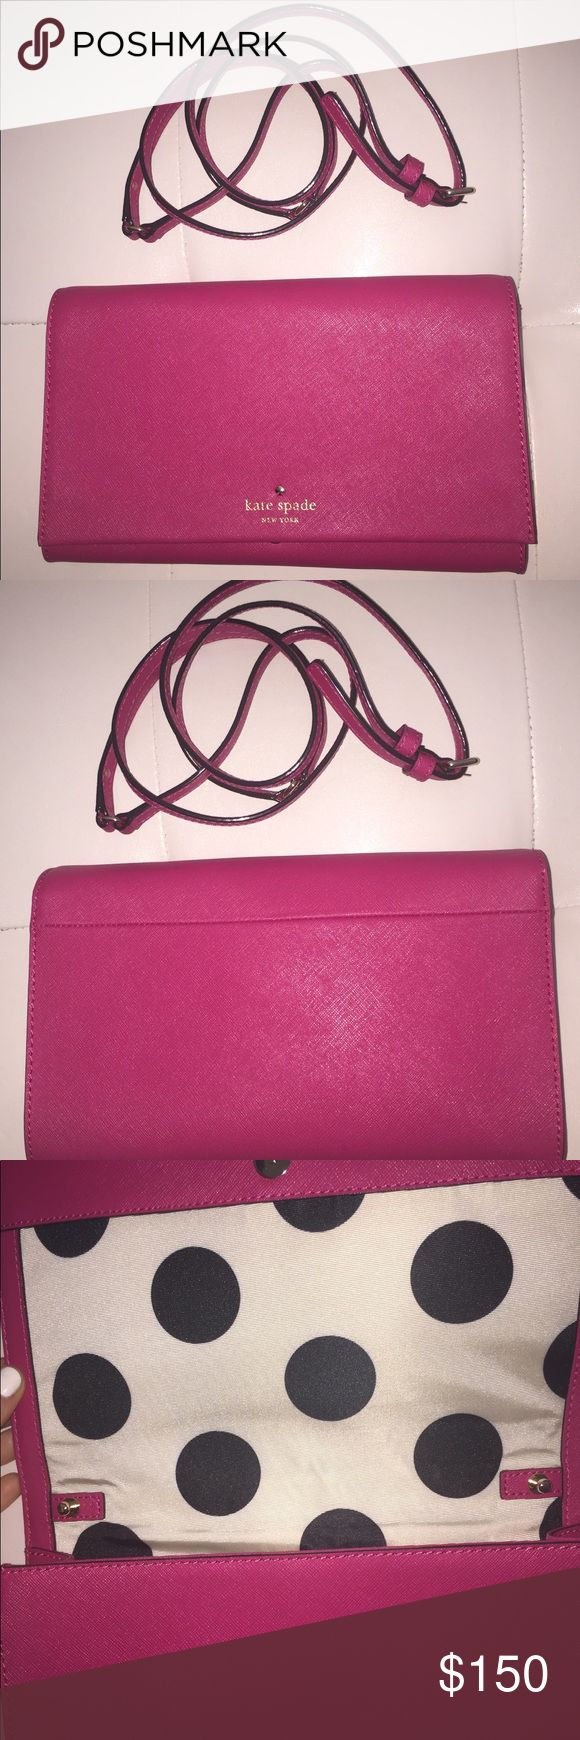 """Kate Spade Cedar Street Cali Pink Crossbody Kate Spade Cedar Street Cali Pink Crossbody/Clutch Bag Retails $198  • New Without Tags • From a Smoke Free & Pet Free Home • Dust Cover Not Included  SIZE • 5.7""""h x 9.8""""w x 0.8""""d • Drop length: 22.5"""" • Total strap length: 45.3""""  MATERIAL • Saffiano Leather with matching trim • 14-karat light gold plated hardware • Polka dot printed faille lining  DETAILS • Crossbody with adjustable and detachable strap • Snap closure • Interior zip pocket kate…"""